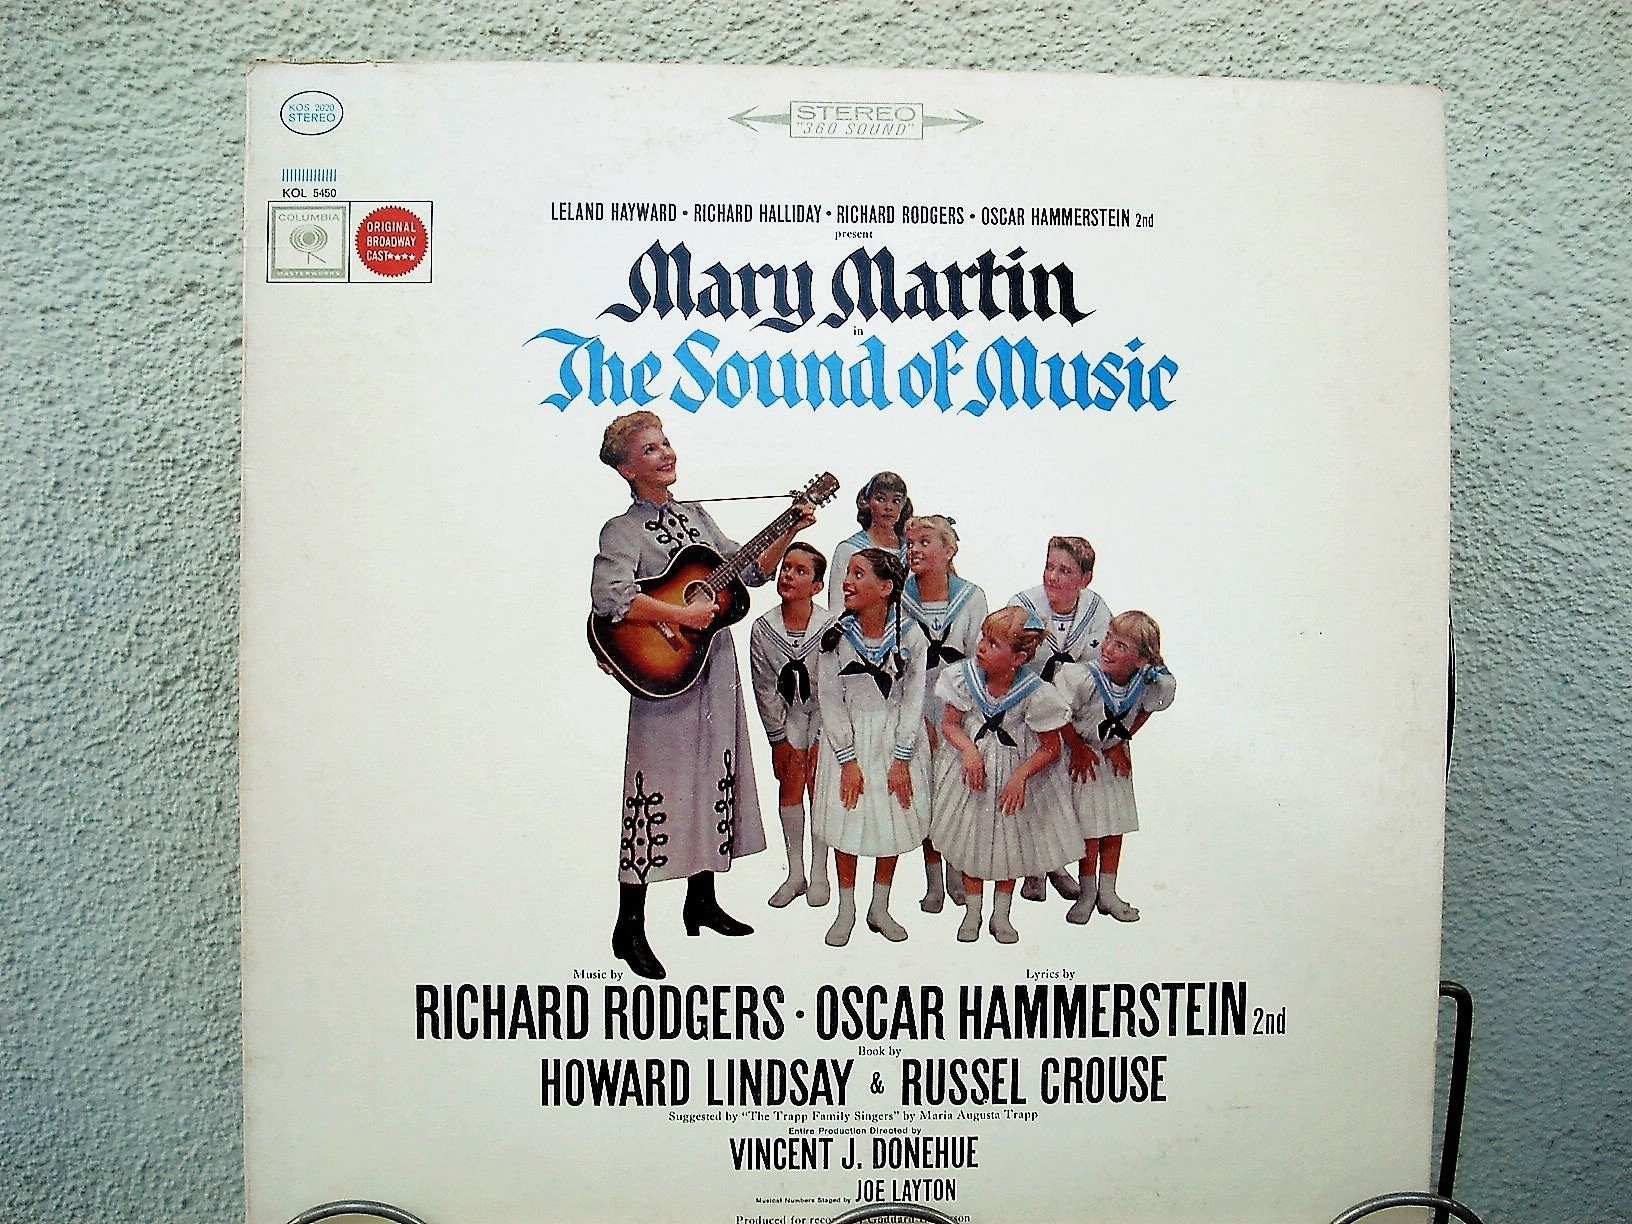 Sound Of Music Vinyl Record, 1965 Vintage Record Julie Andrews, Soundtrack,  Von Trapp Singers, Movie Musical, Academy Awards